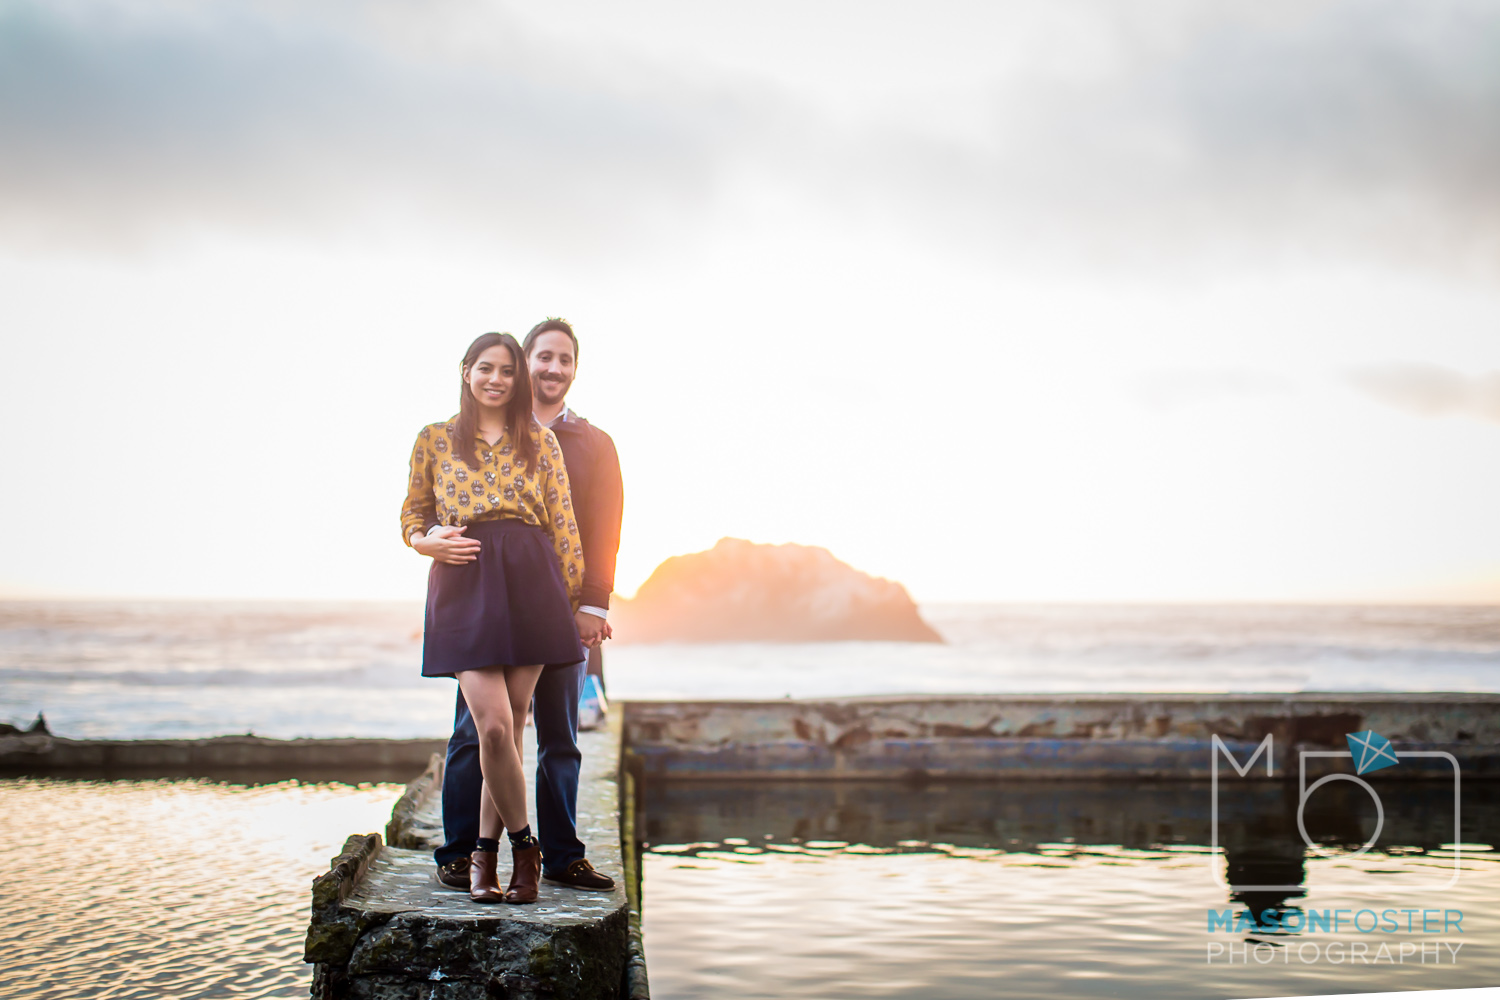 sutro baths engagement photography sunset in san francisco